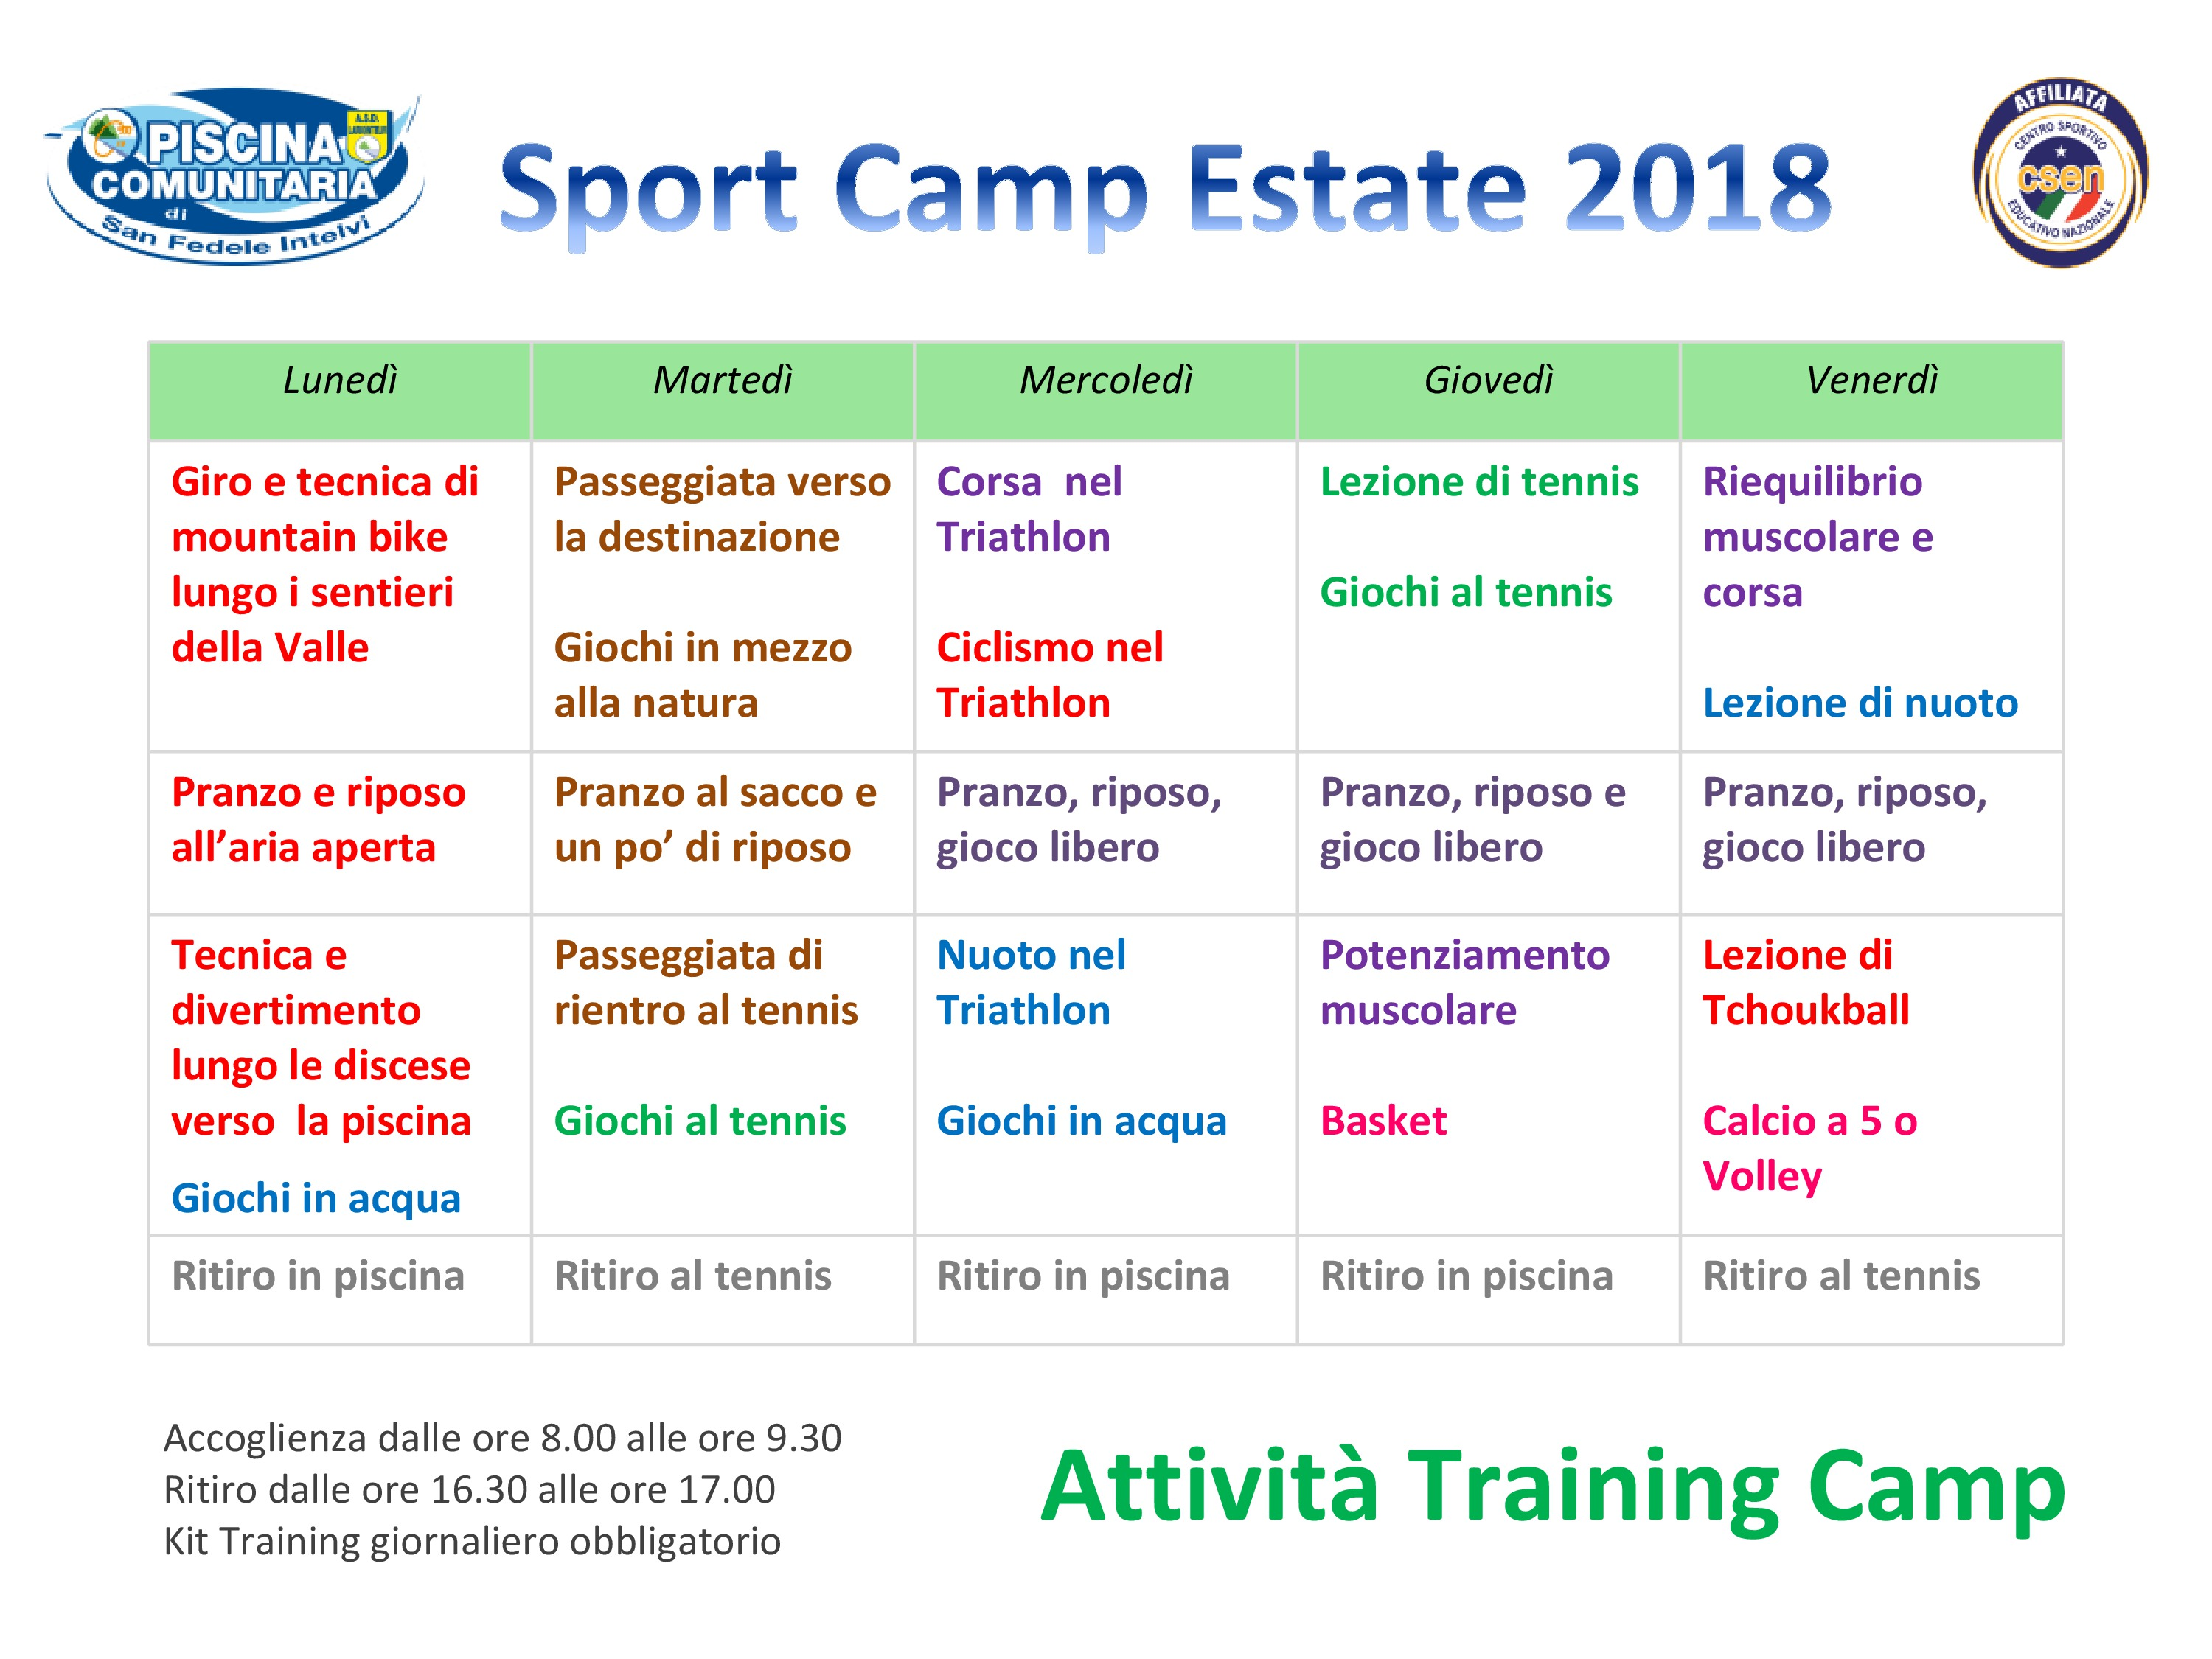 programma trainingcamp2018